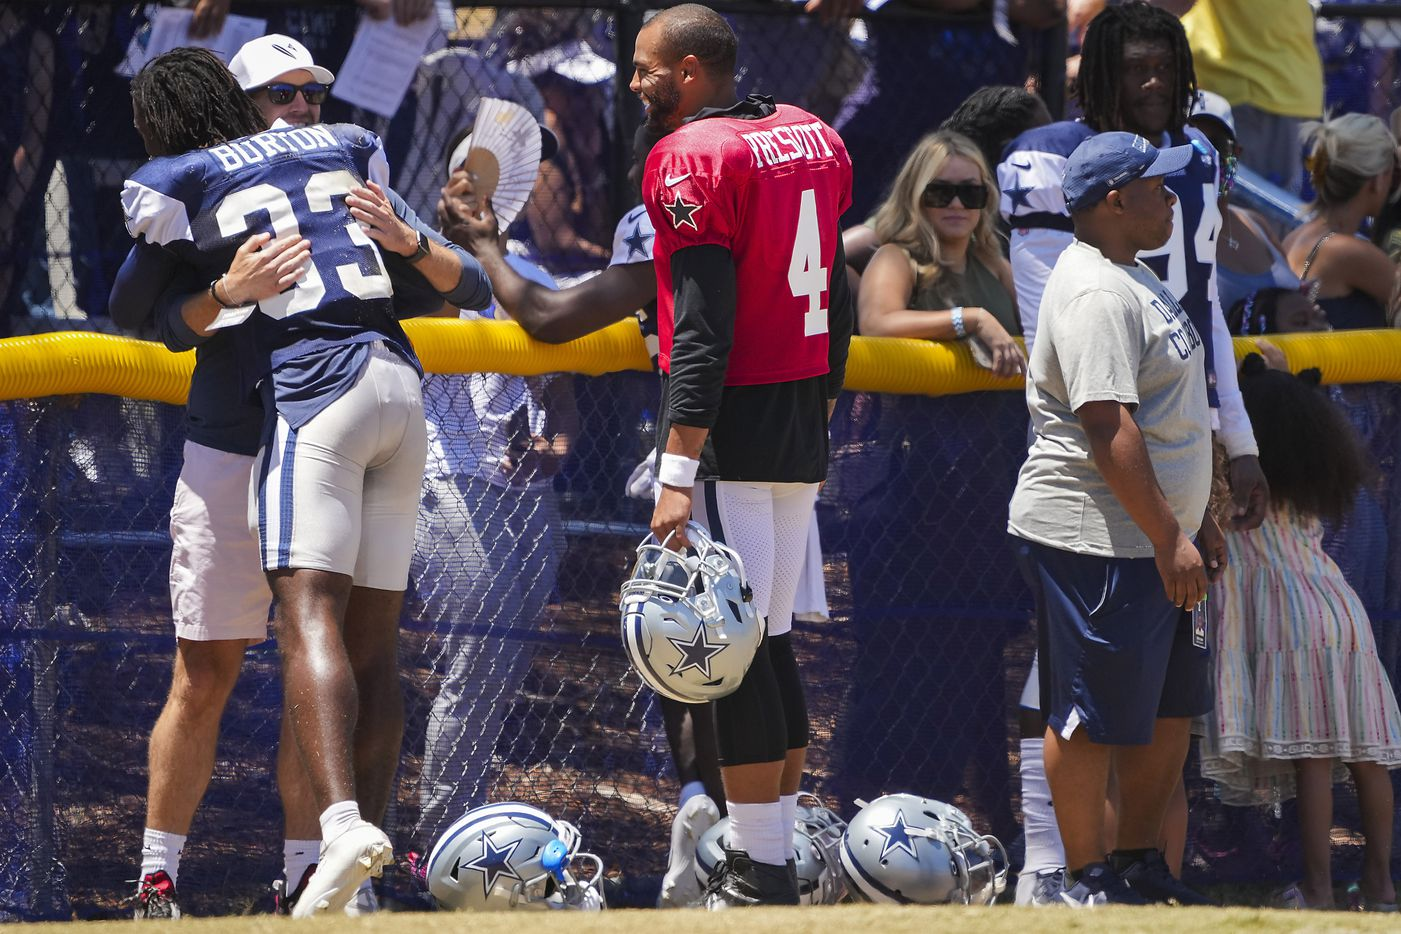 Dallas Cowboys quarterback Dak Prescott (4), cornerback Deante Burton (33) and defensive end Randy Gregory (94) spend time with family and friend after a practice at training camp on Sunday, Aug. 1, 2021, in Oxnard, Calif.